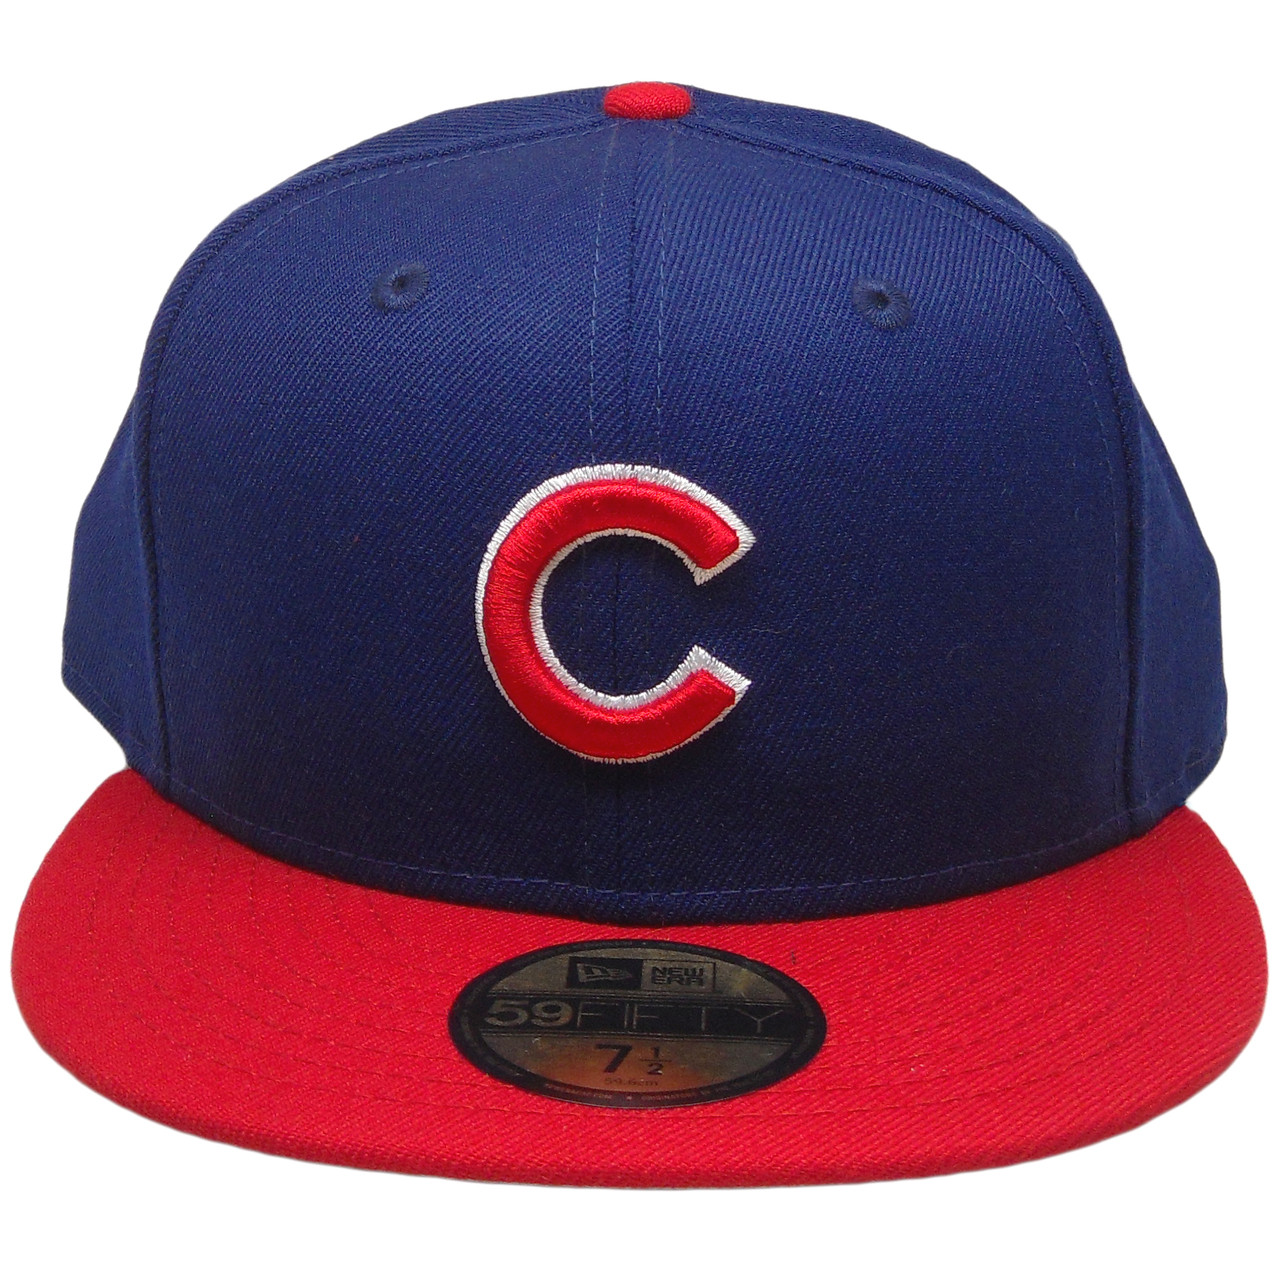 01b37565ccd Chicago Cubs New Era Custom 59Fifty Fitted Hat - Dark Royal